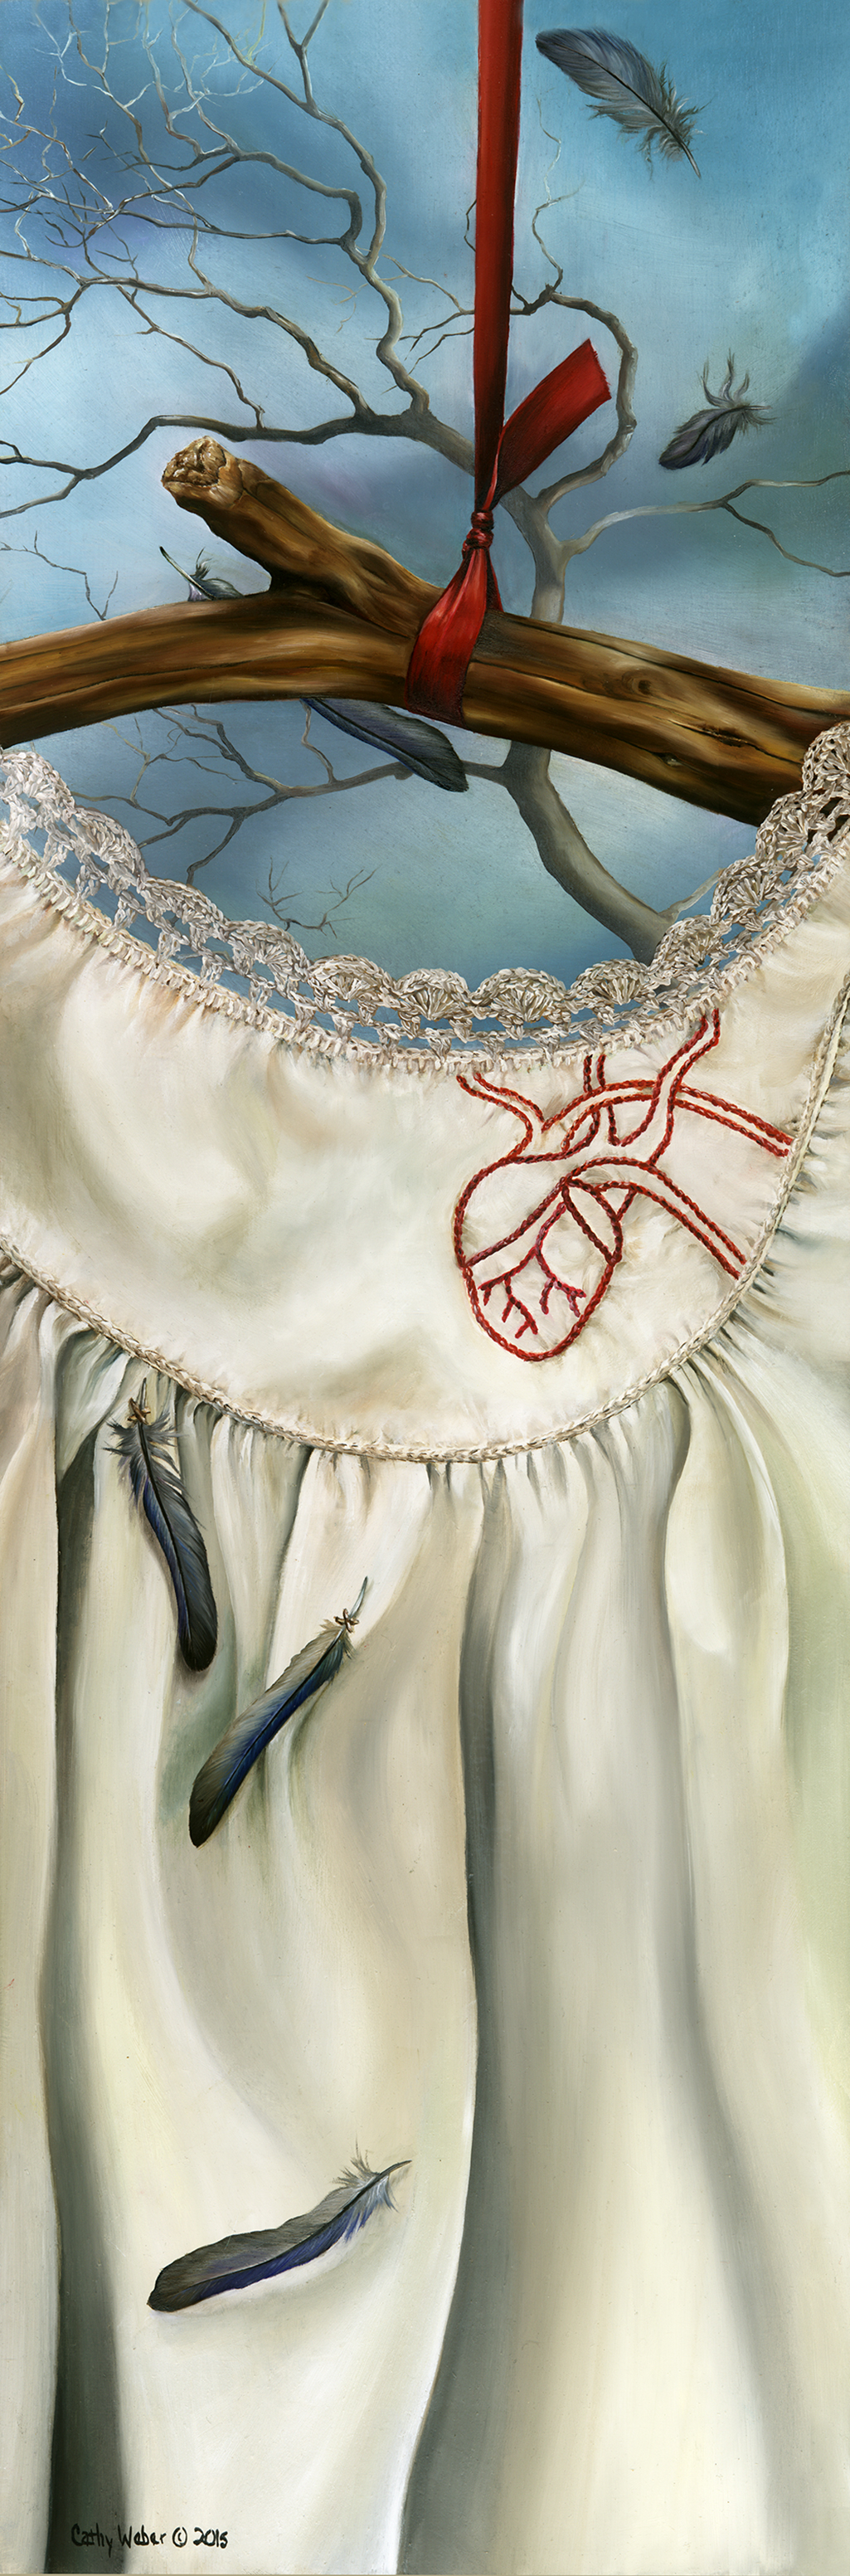 cathy weber - art - watercolor - creation - stitcher - stitch - montana - embroidery - crochet - feather - heart